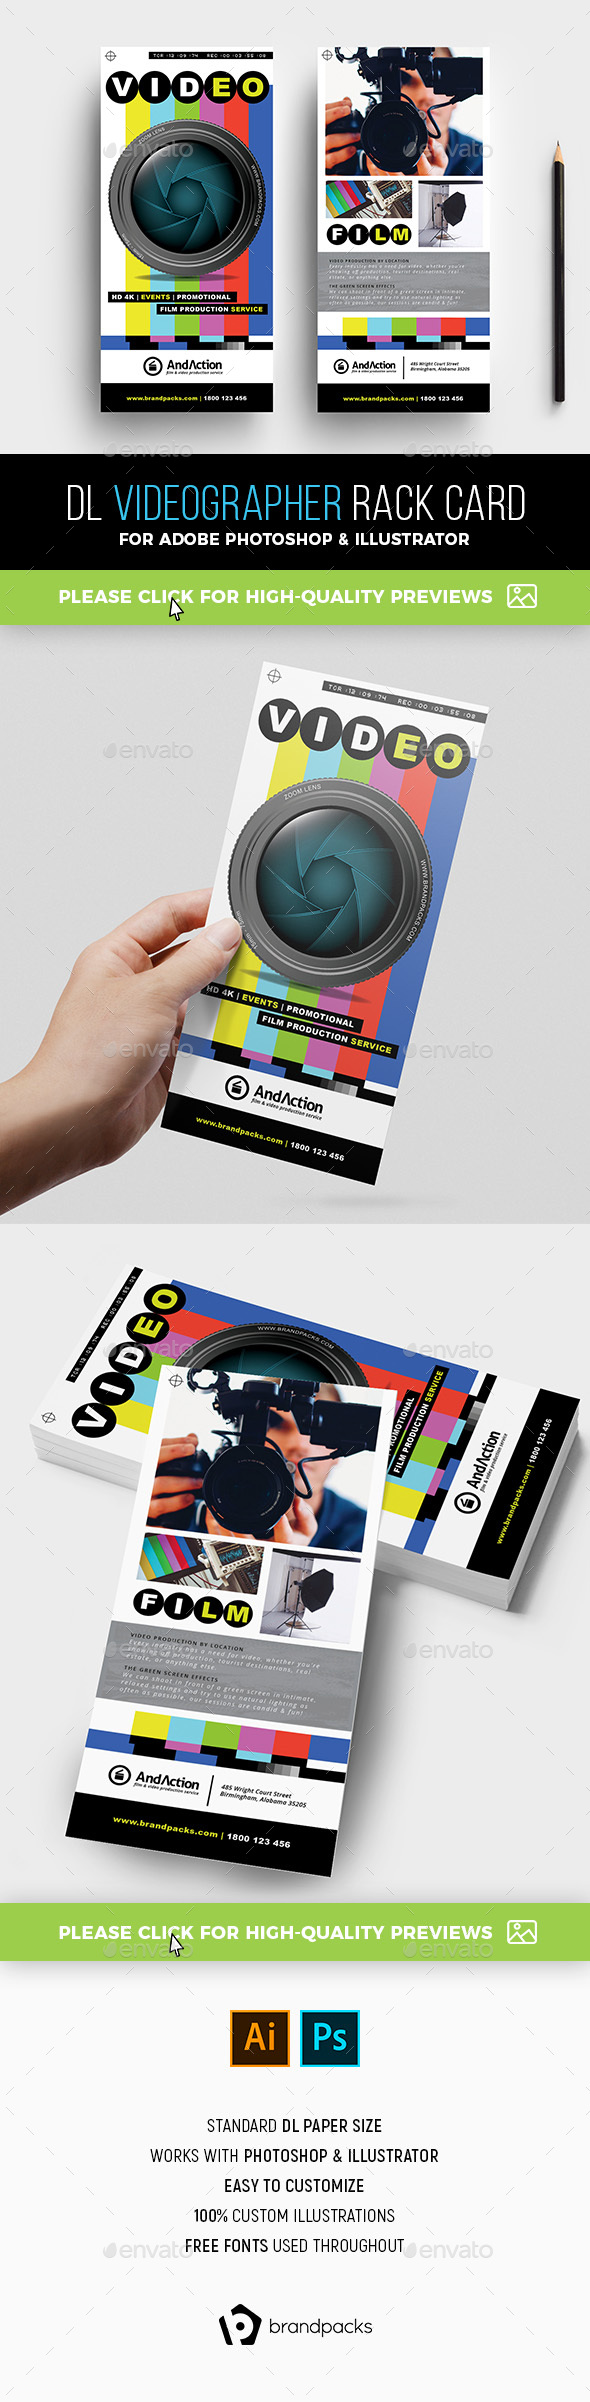 Videographer Rack Card Template - Corporate Flyers